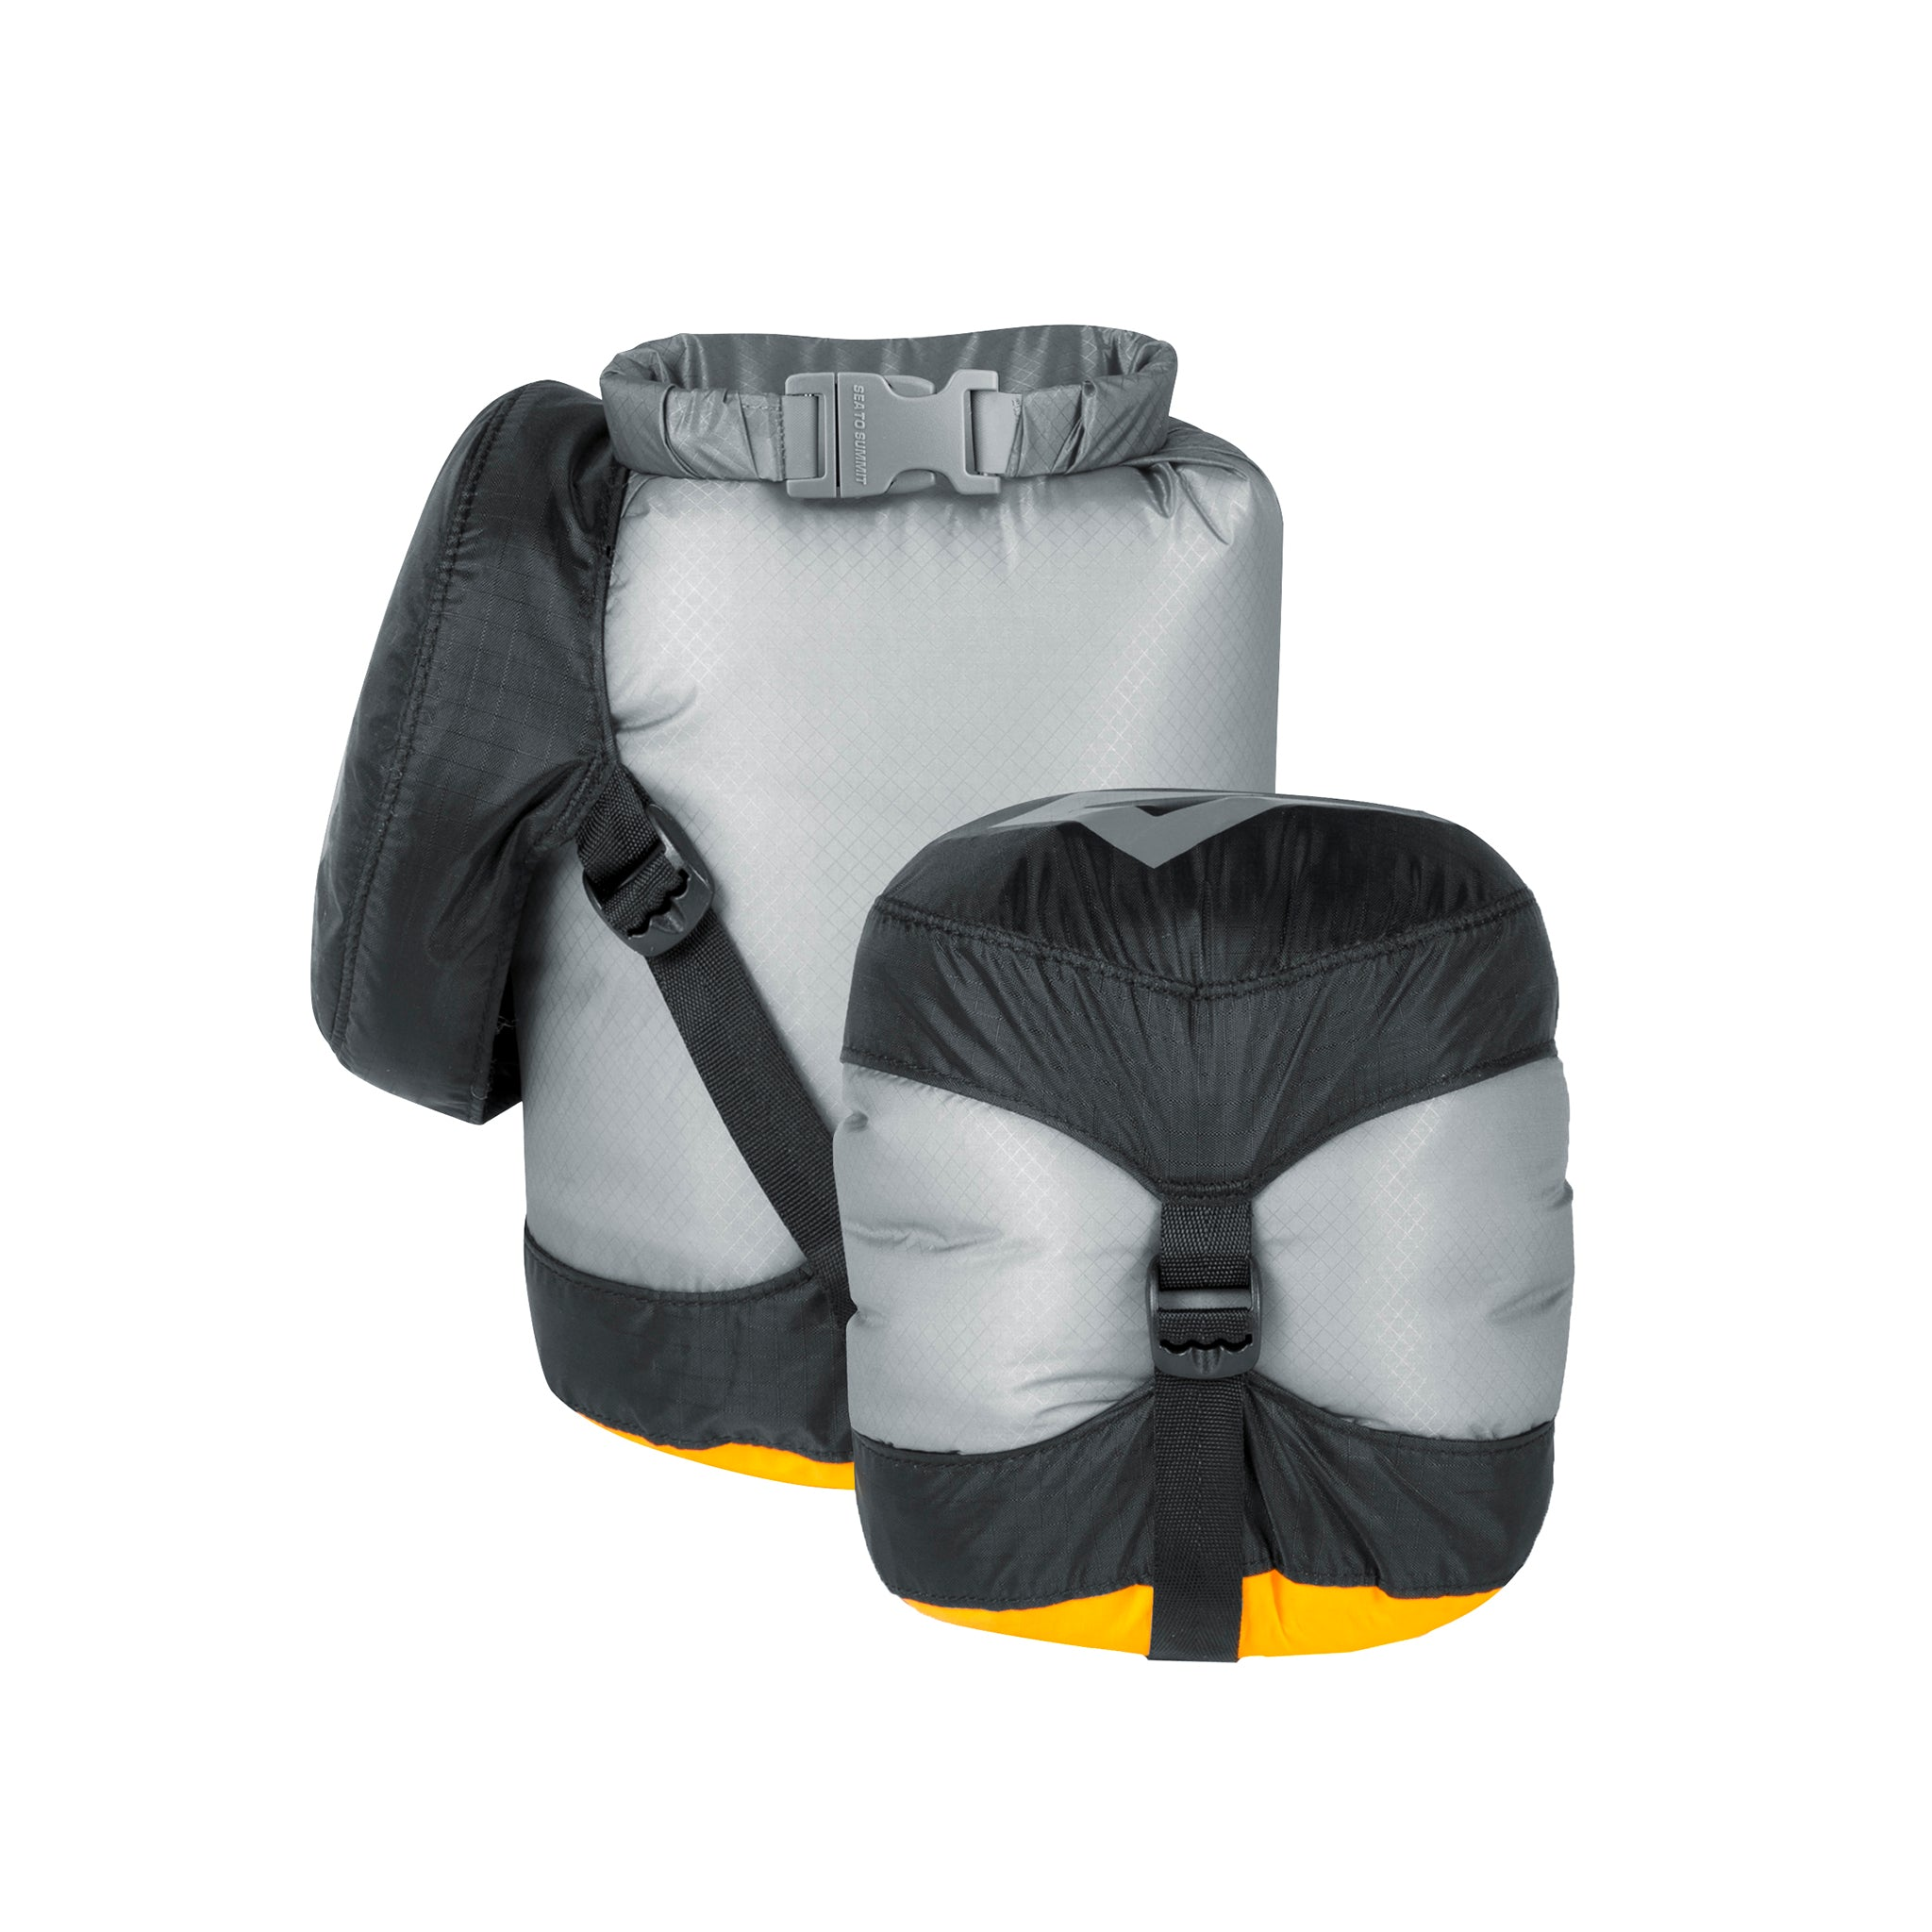 Ultra-Sil_eVent_Compression_Waterproof Dry Bag___3 liter